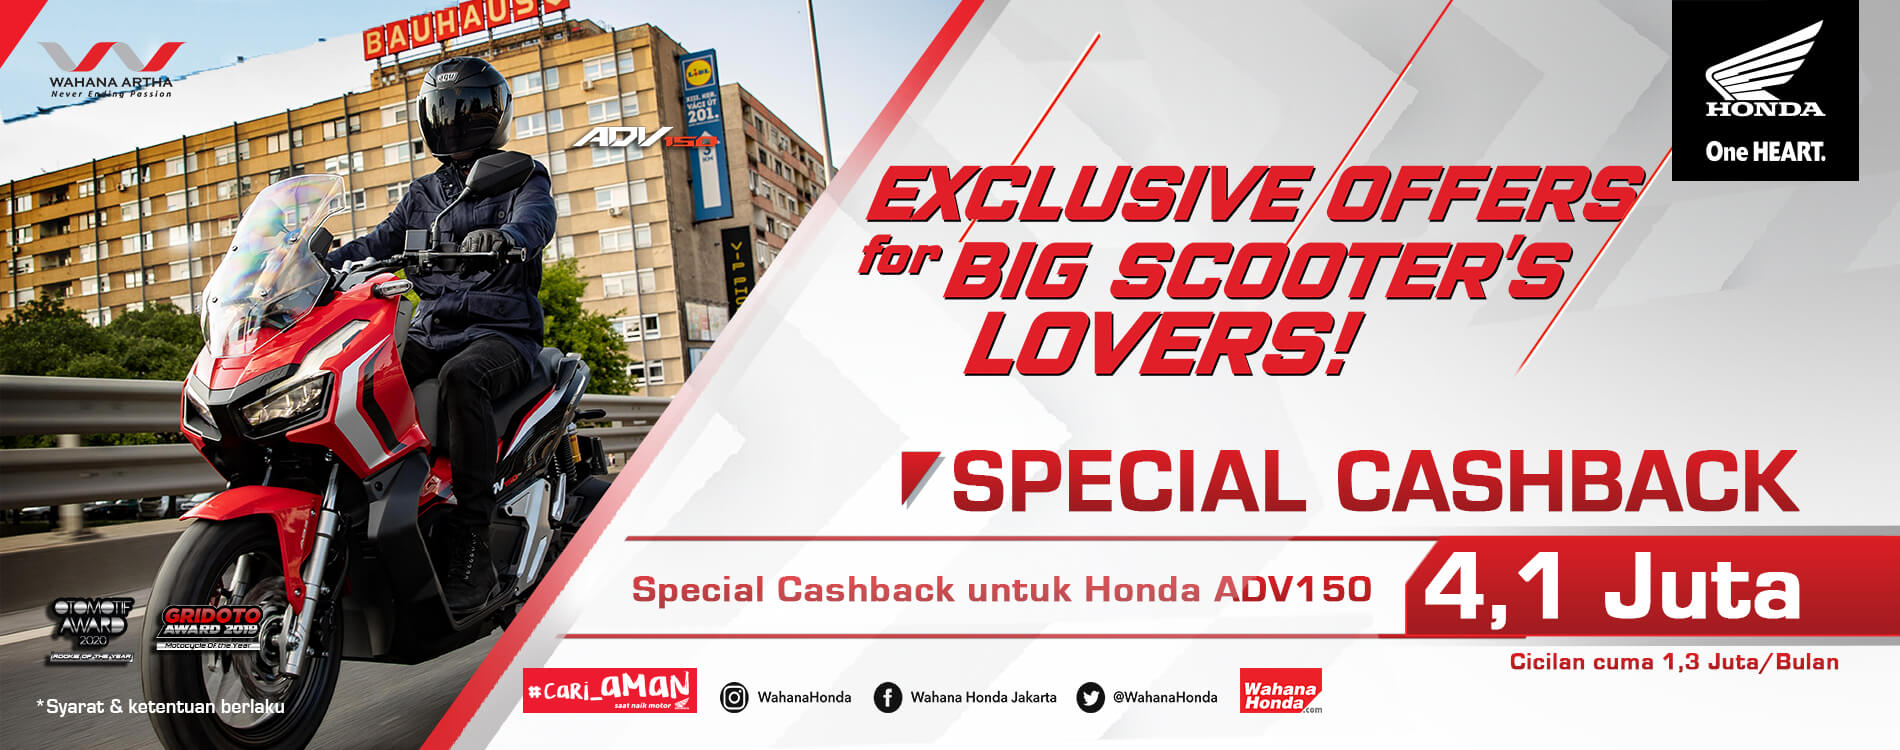 Exclusive Offers For Big Scooter's Lovers ADV150 4.1 Juta (26 Mei - 30 Juni 2020)